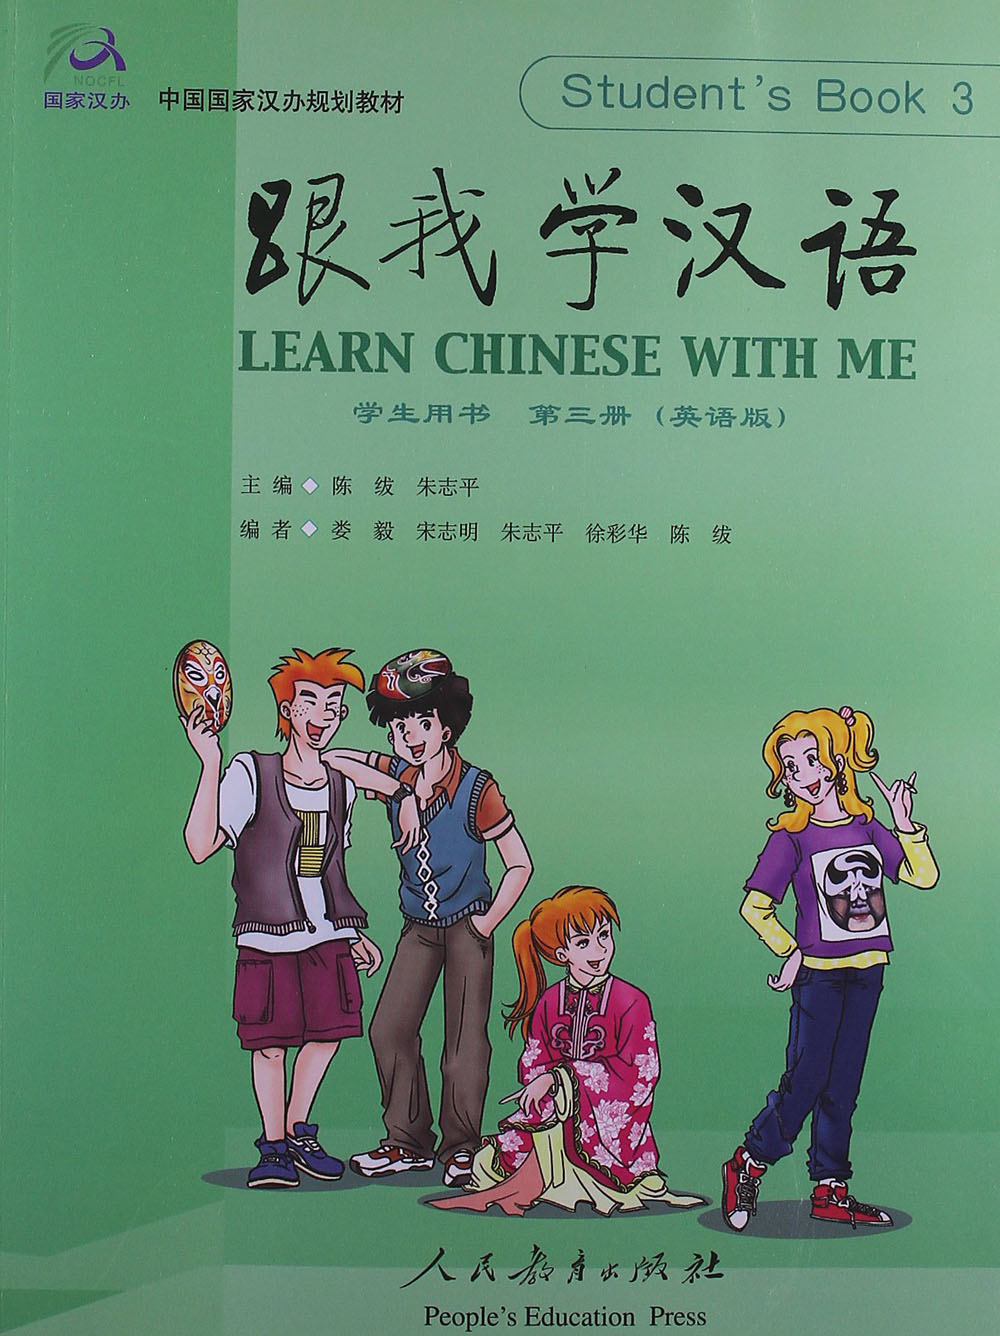 Learn Chinese With Me Book Volume 3 For Chinese Textbook In English And Chinese